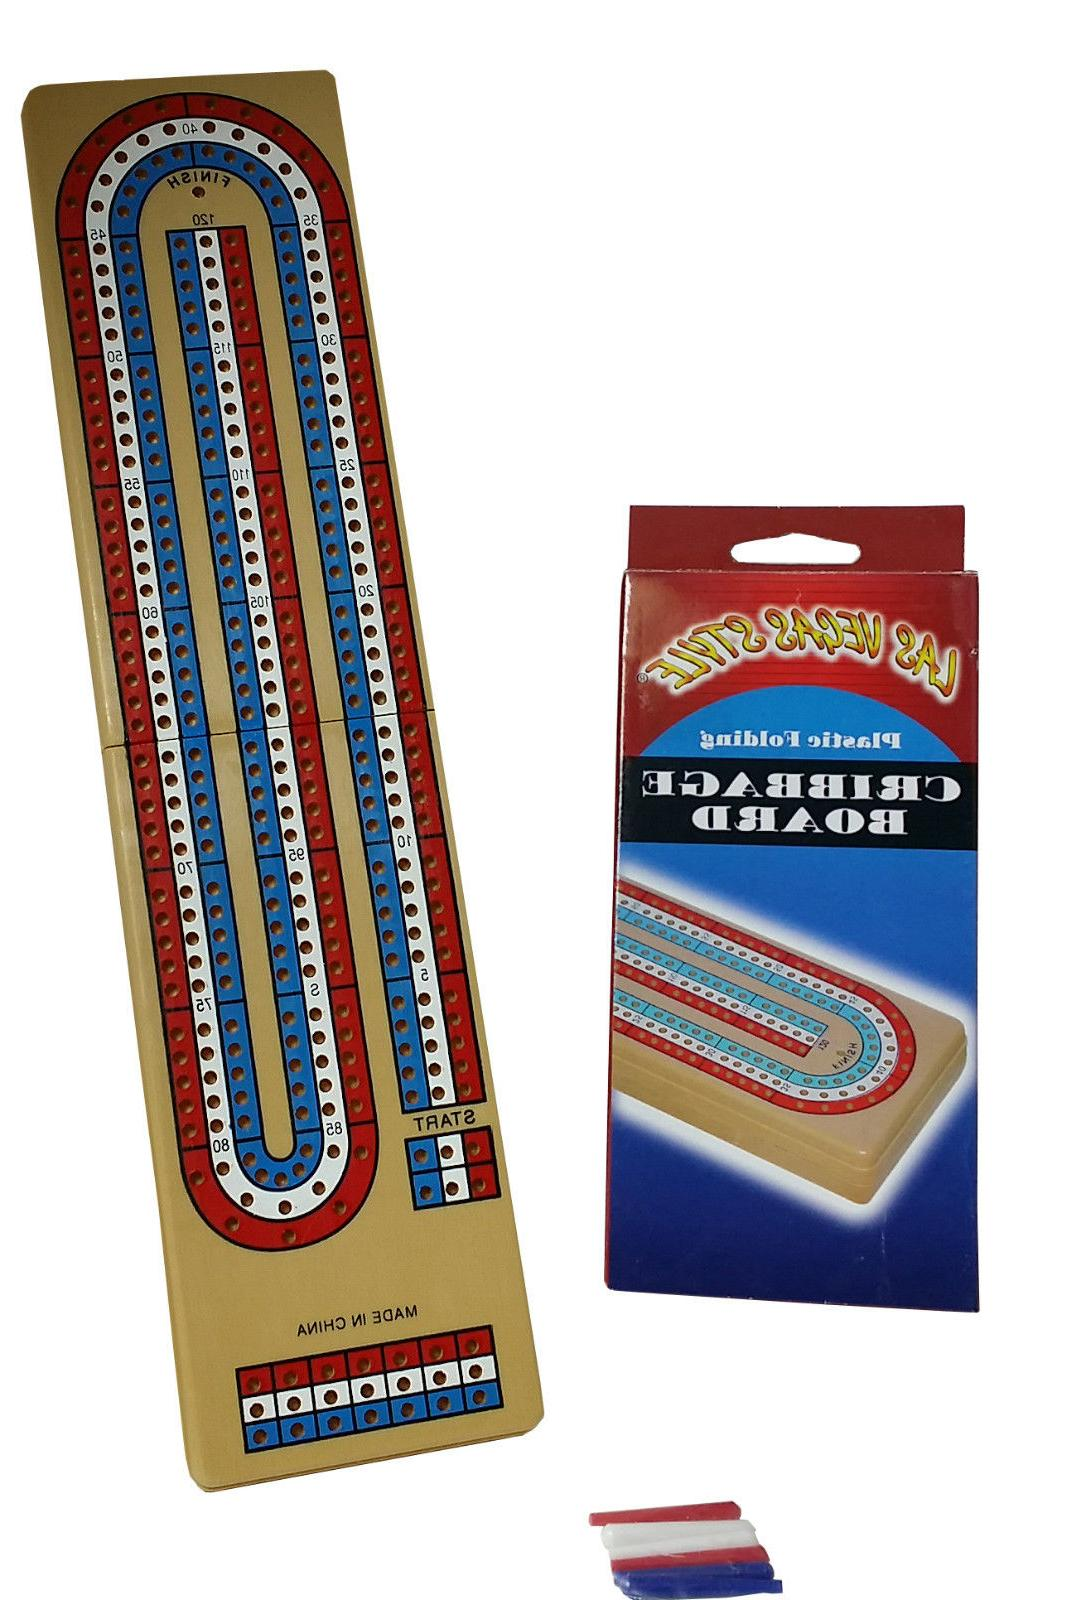 1 NEW Boxed Travel Size Cribbage Board 3 PLAYER  With Pegs F